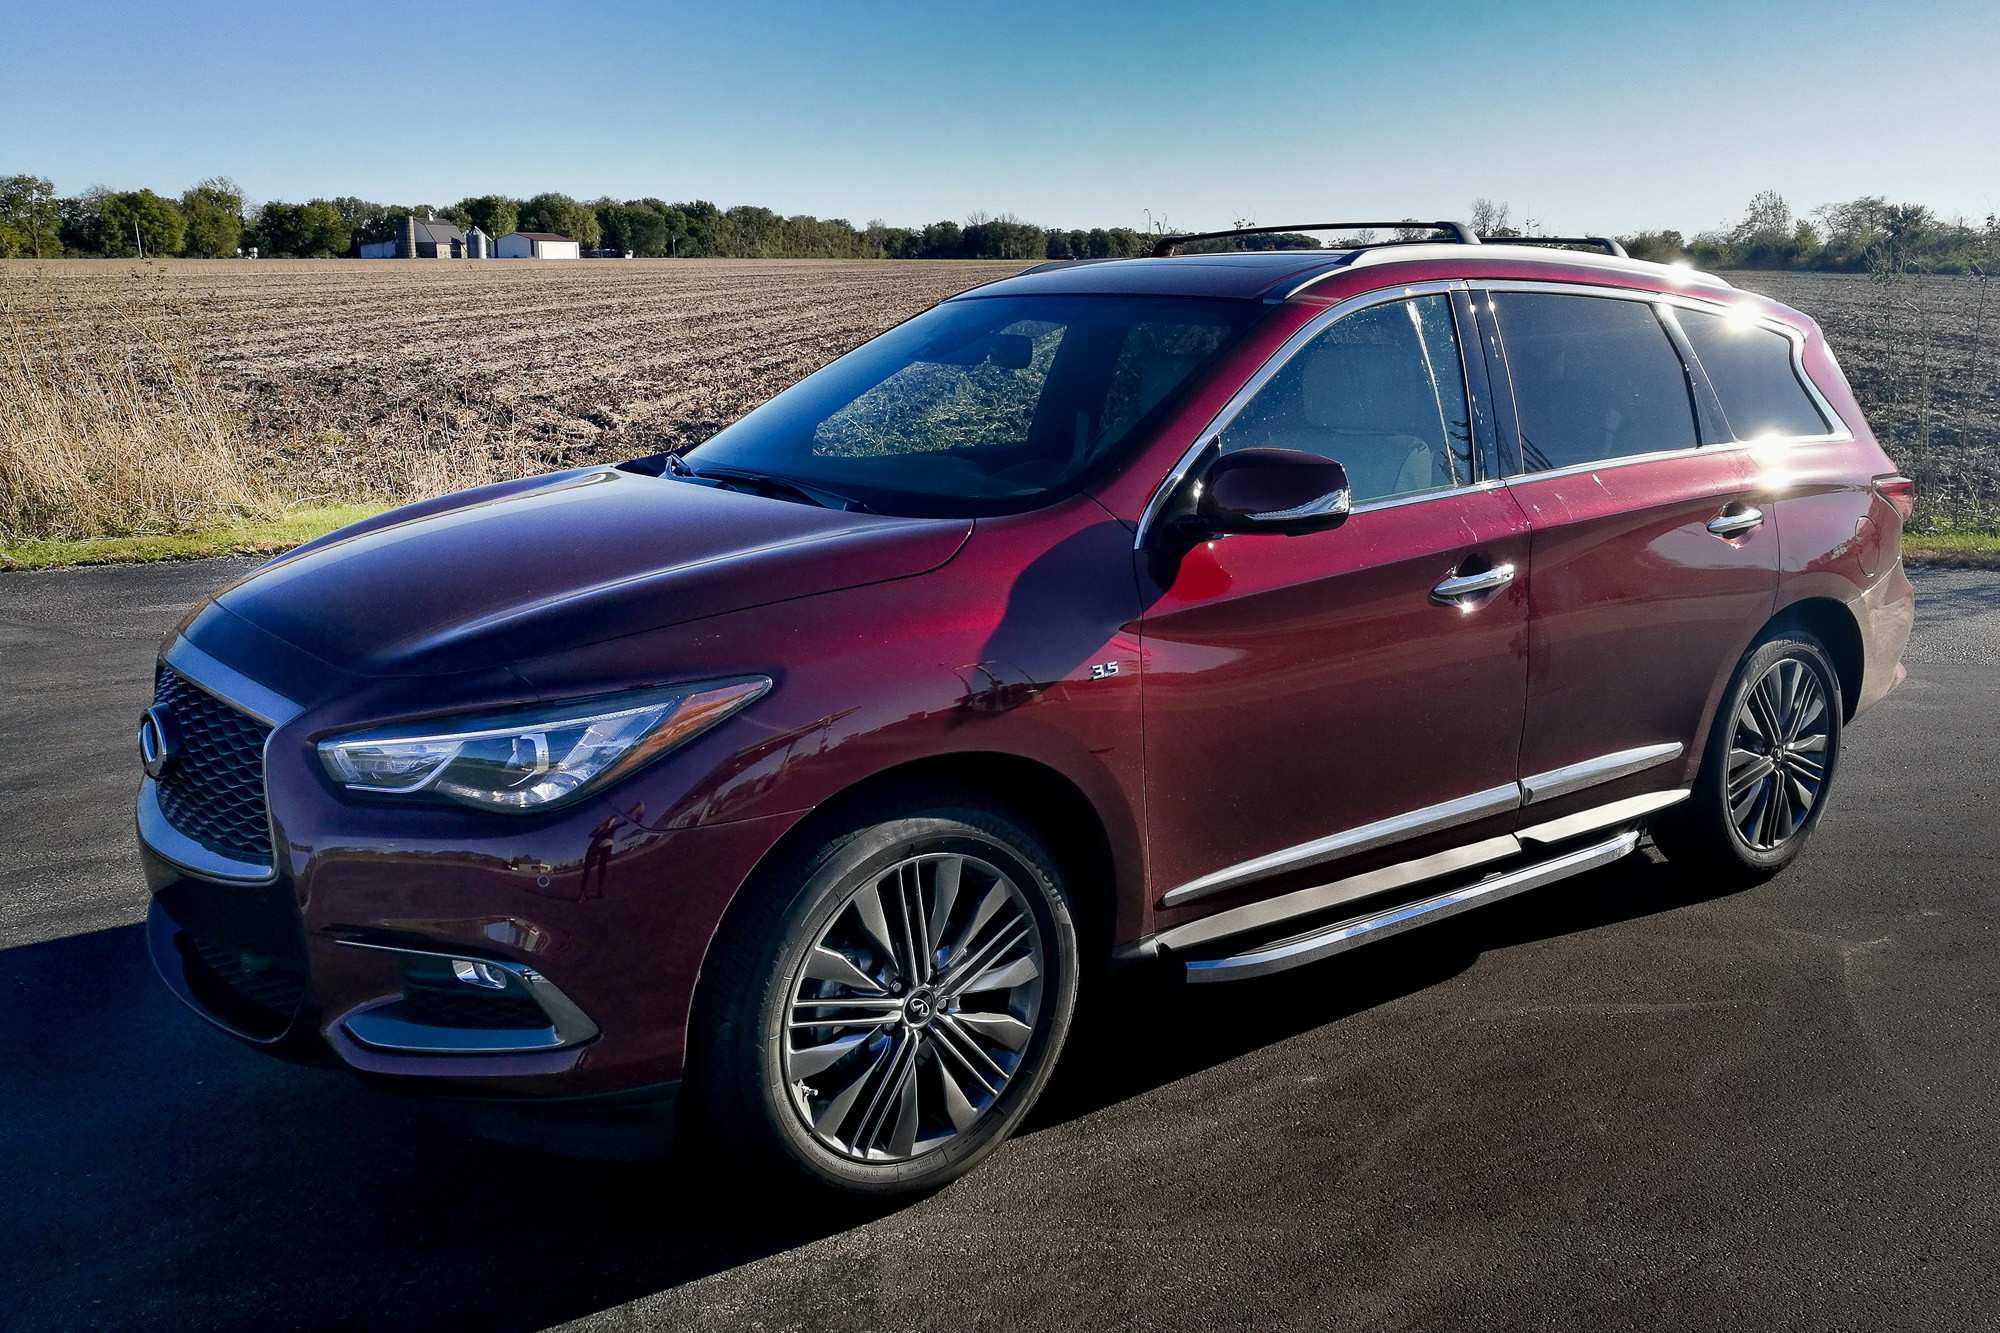 92 Concept of When Does The 2020 Infiniti Qx60 Come Out Research New by When Does The 2020 Infiniti Qx60 Come Out